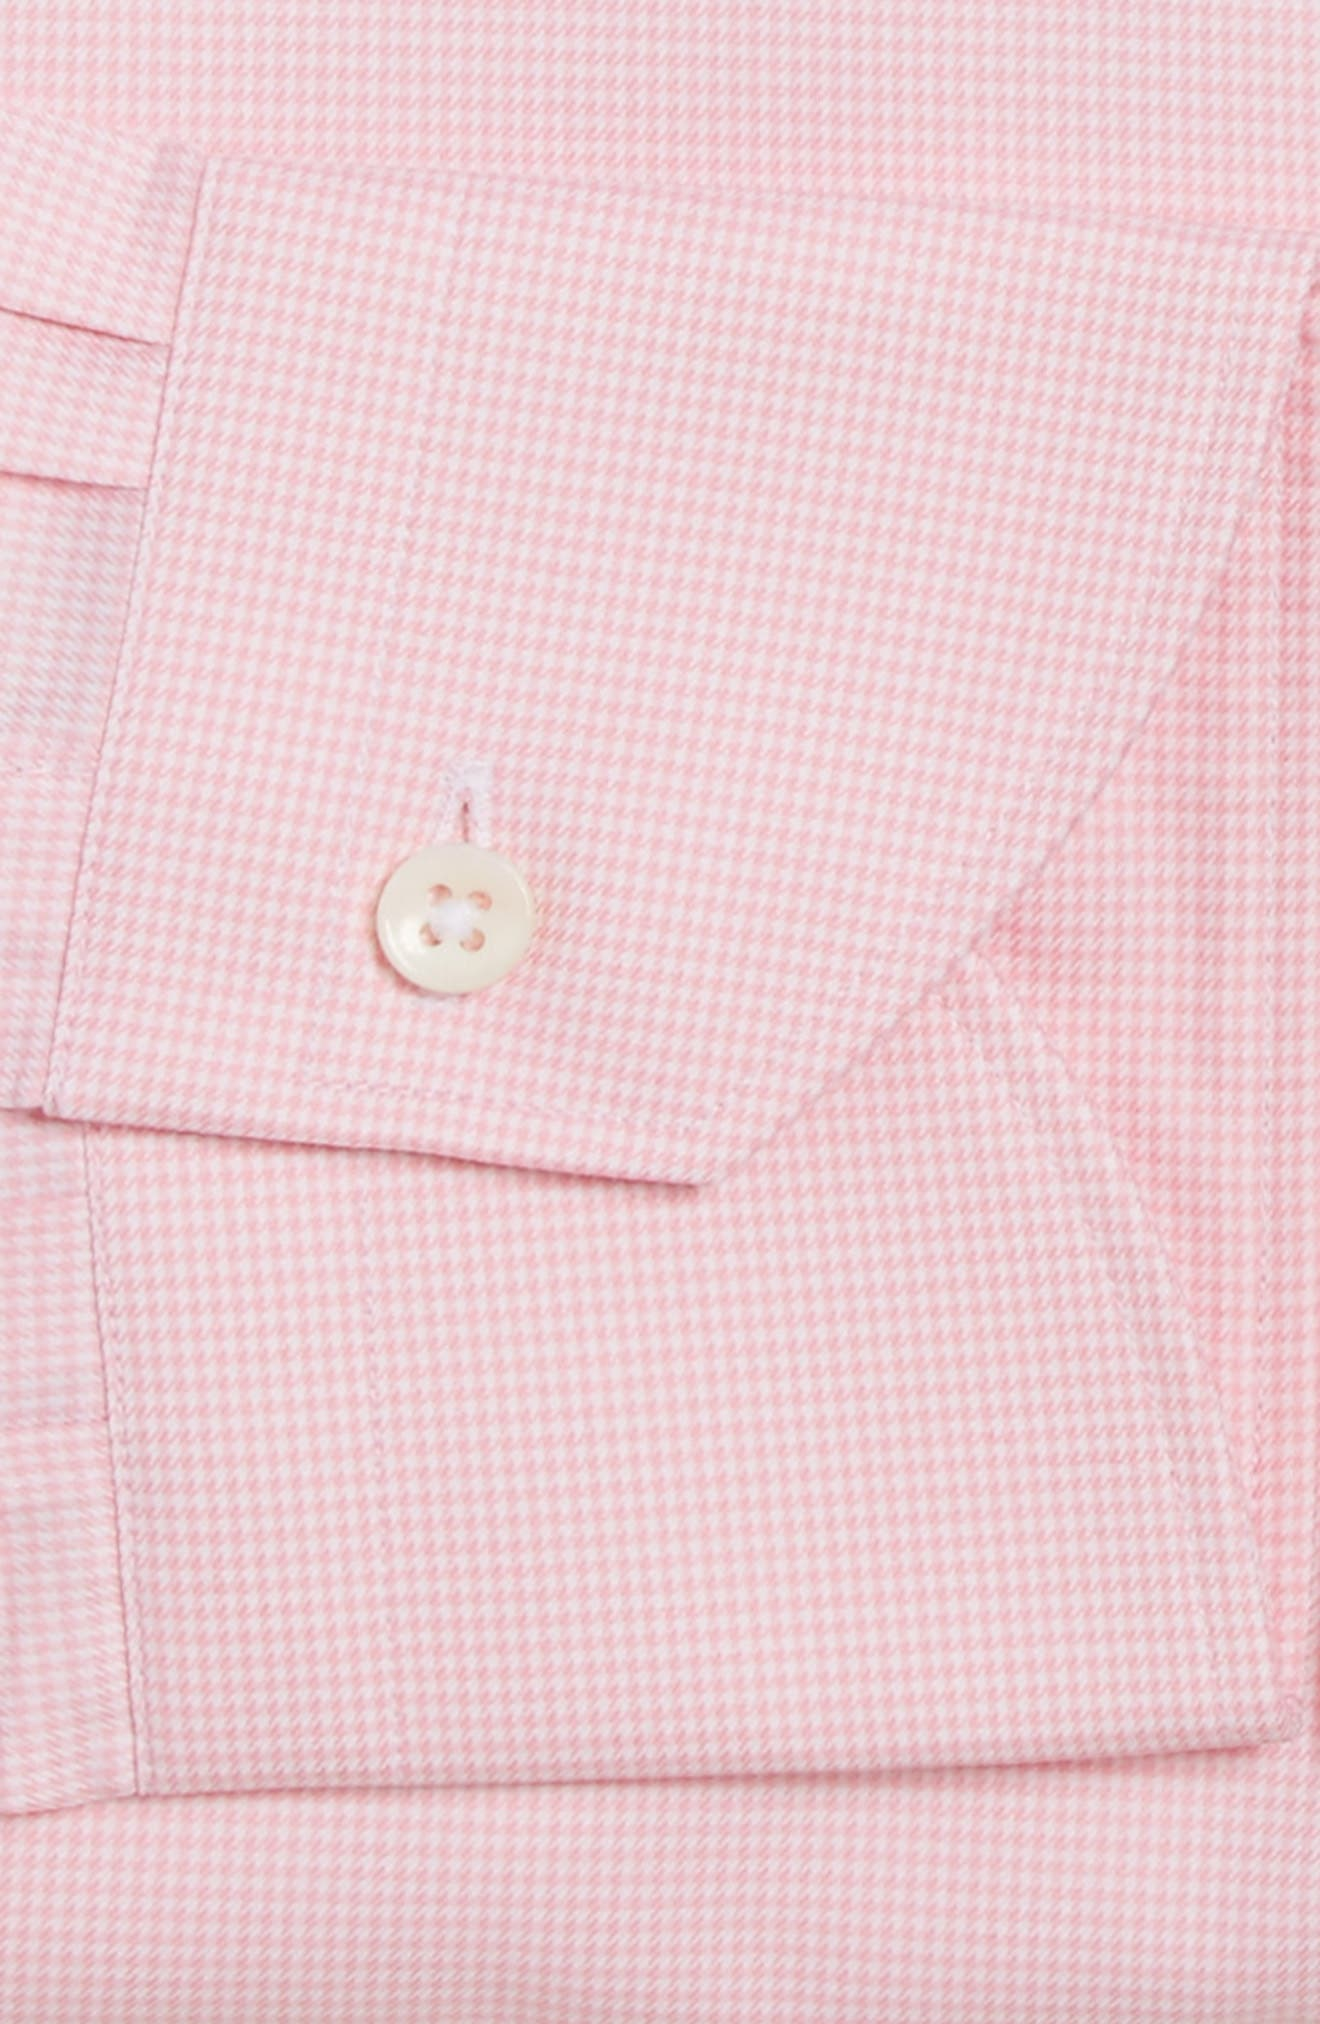 Regular Fit Houndstooth Dress Shirt,                             Alternate thumbnail 3, color,                             650